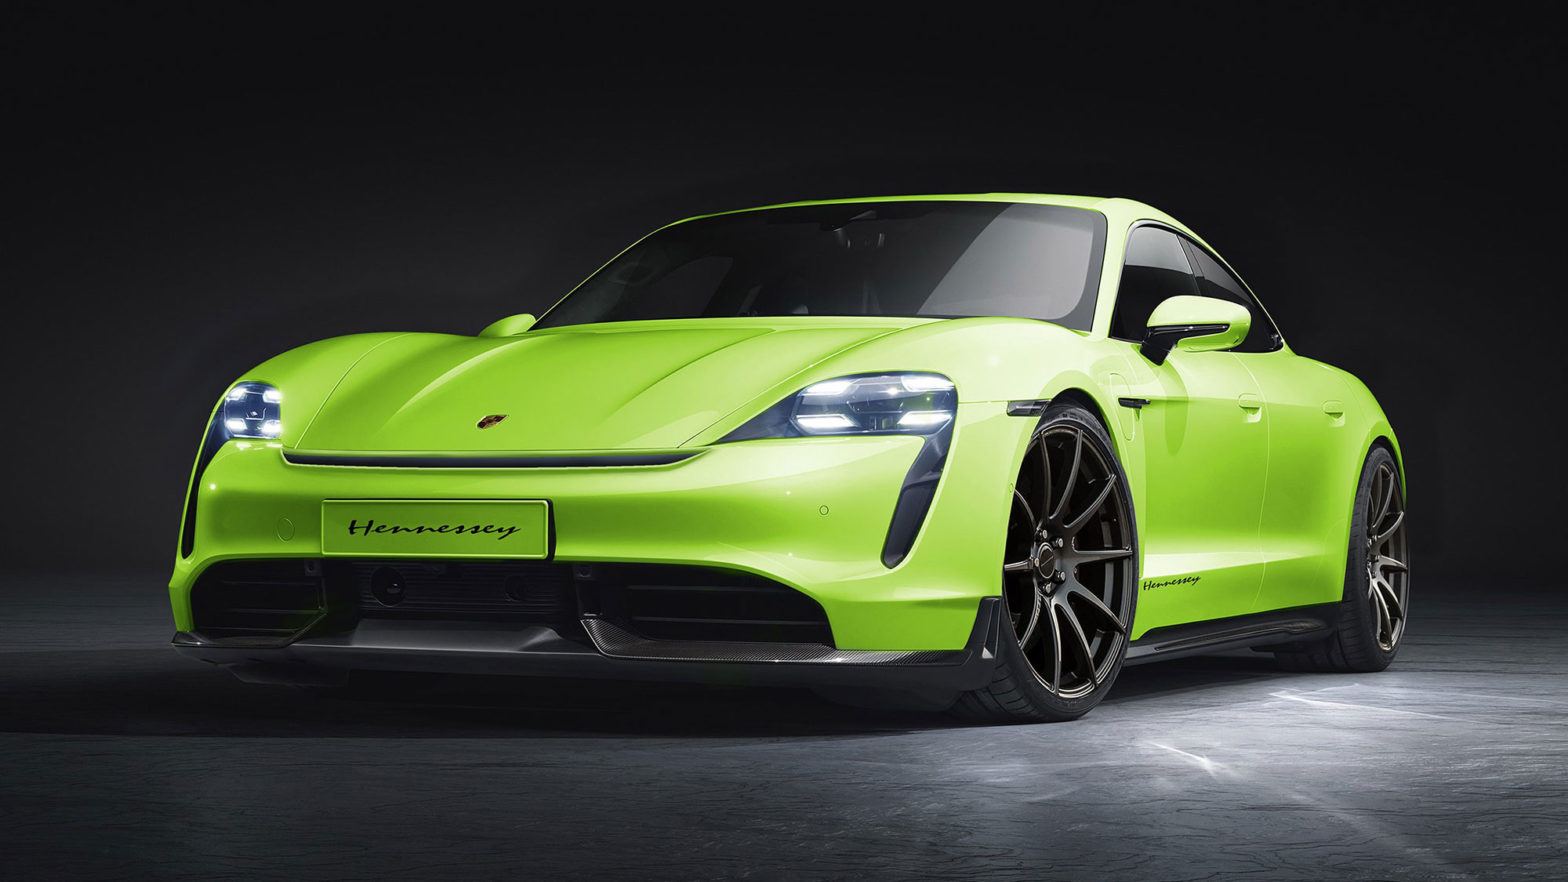 Hennessey Porsche Taycan Electric Vehicle